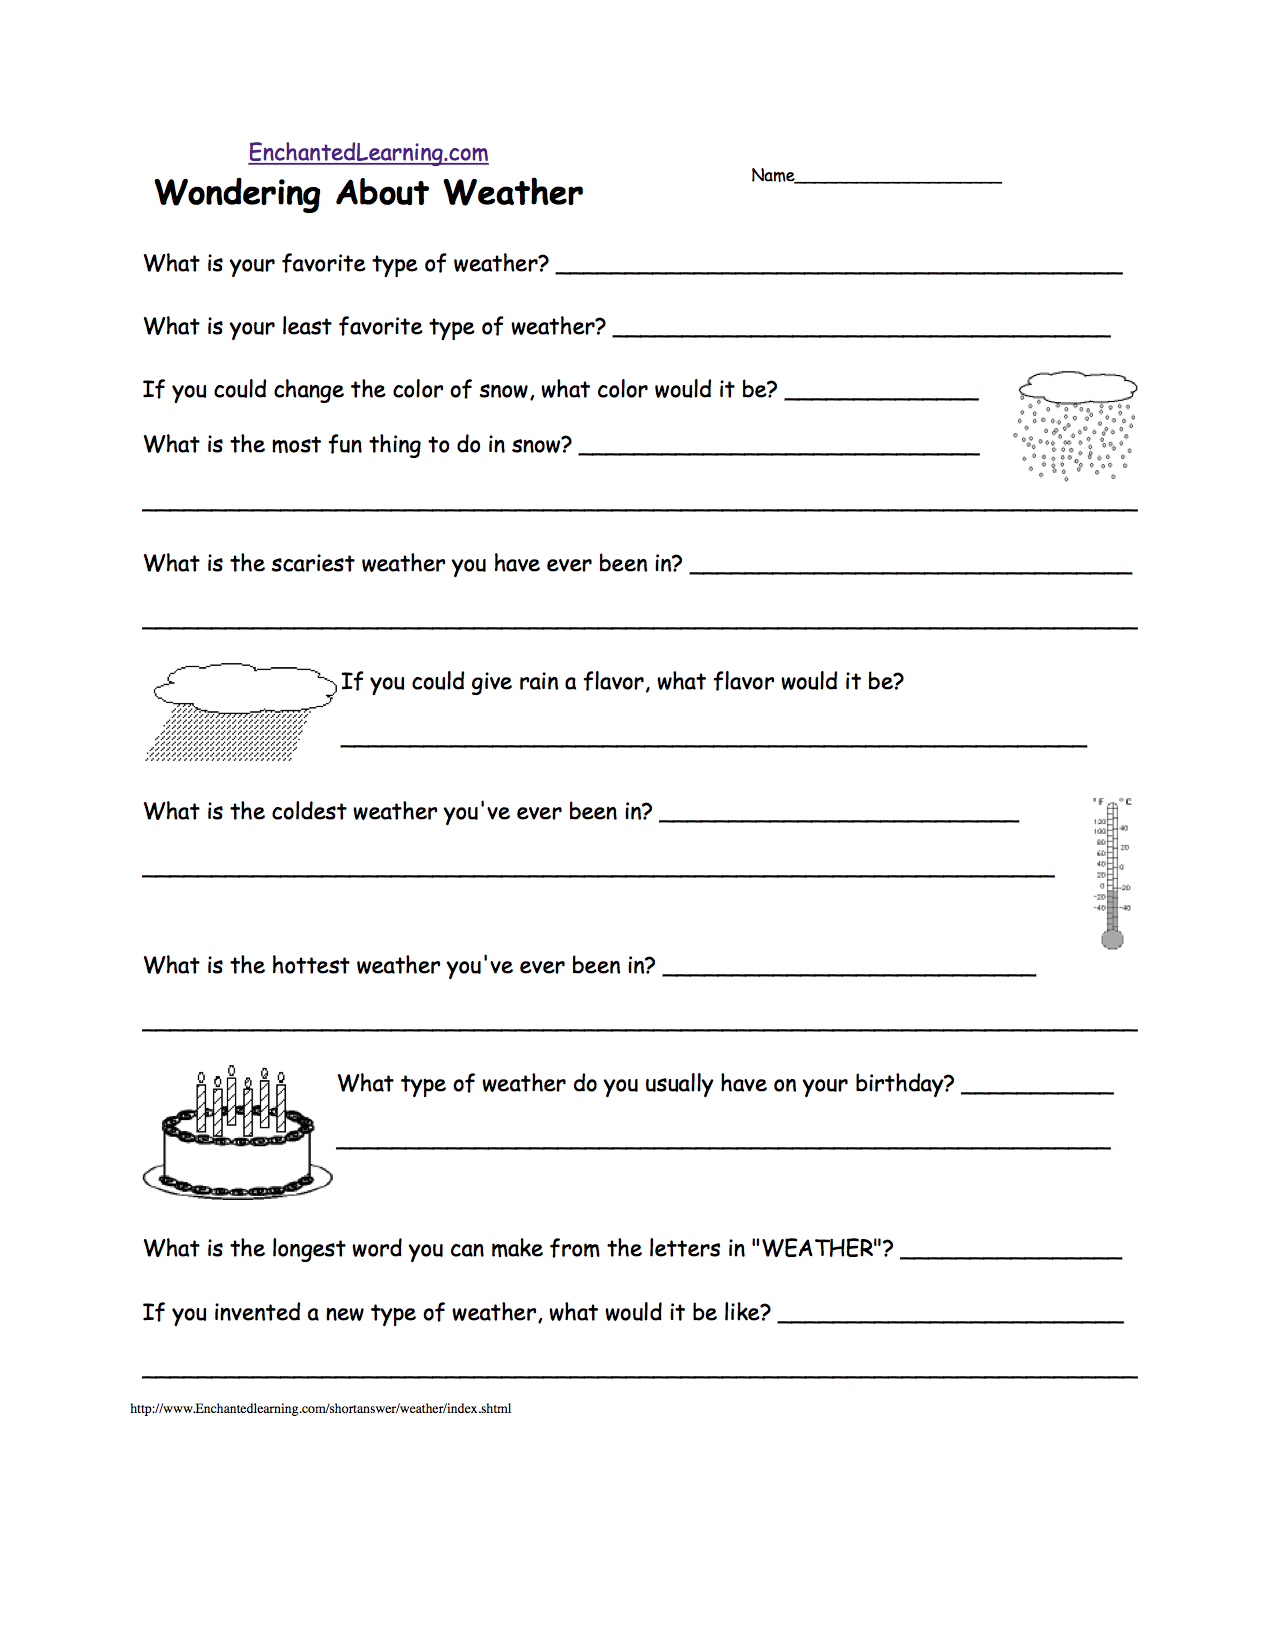 Short Answer Quizzes Printable EnchantedLearning – Climate Change Worksheet